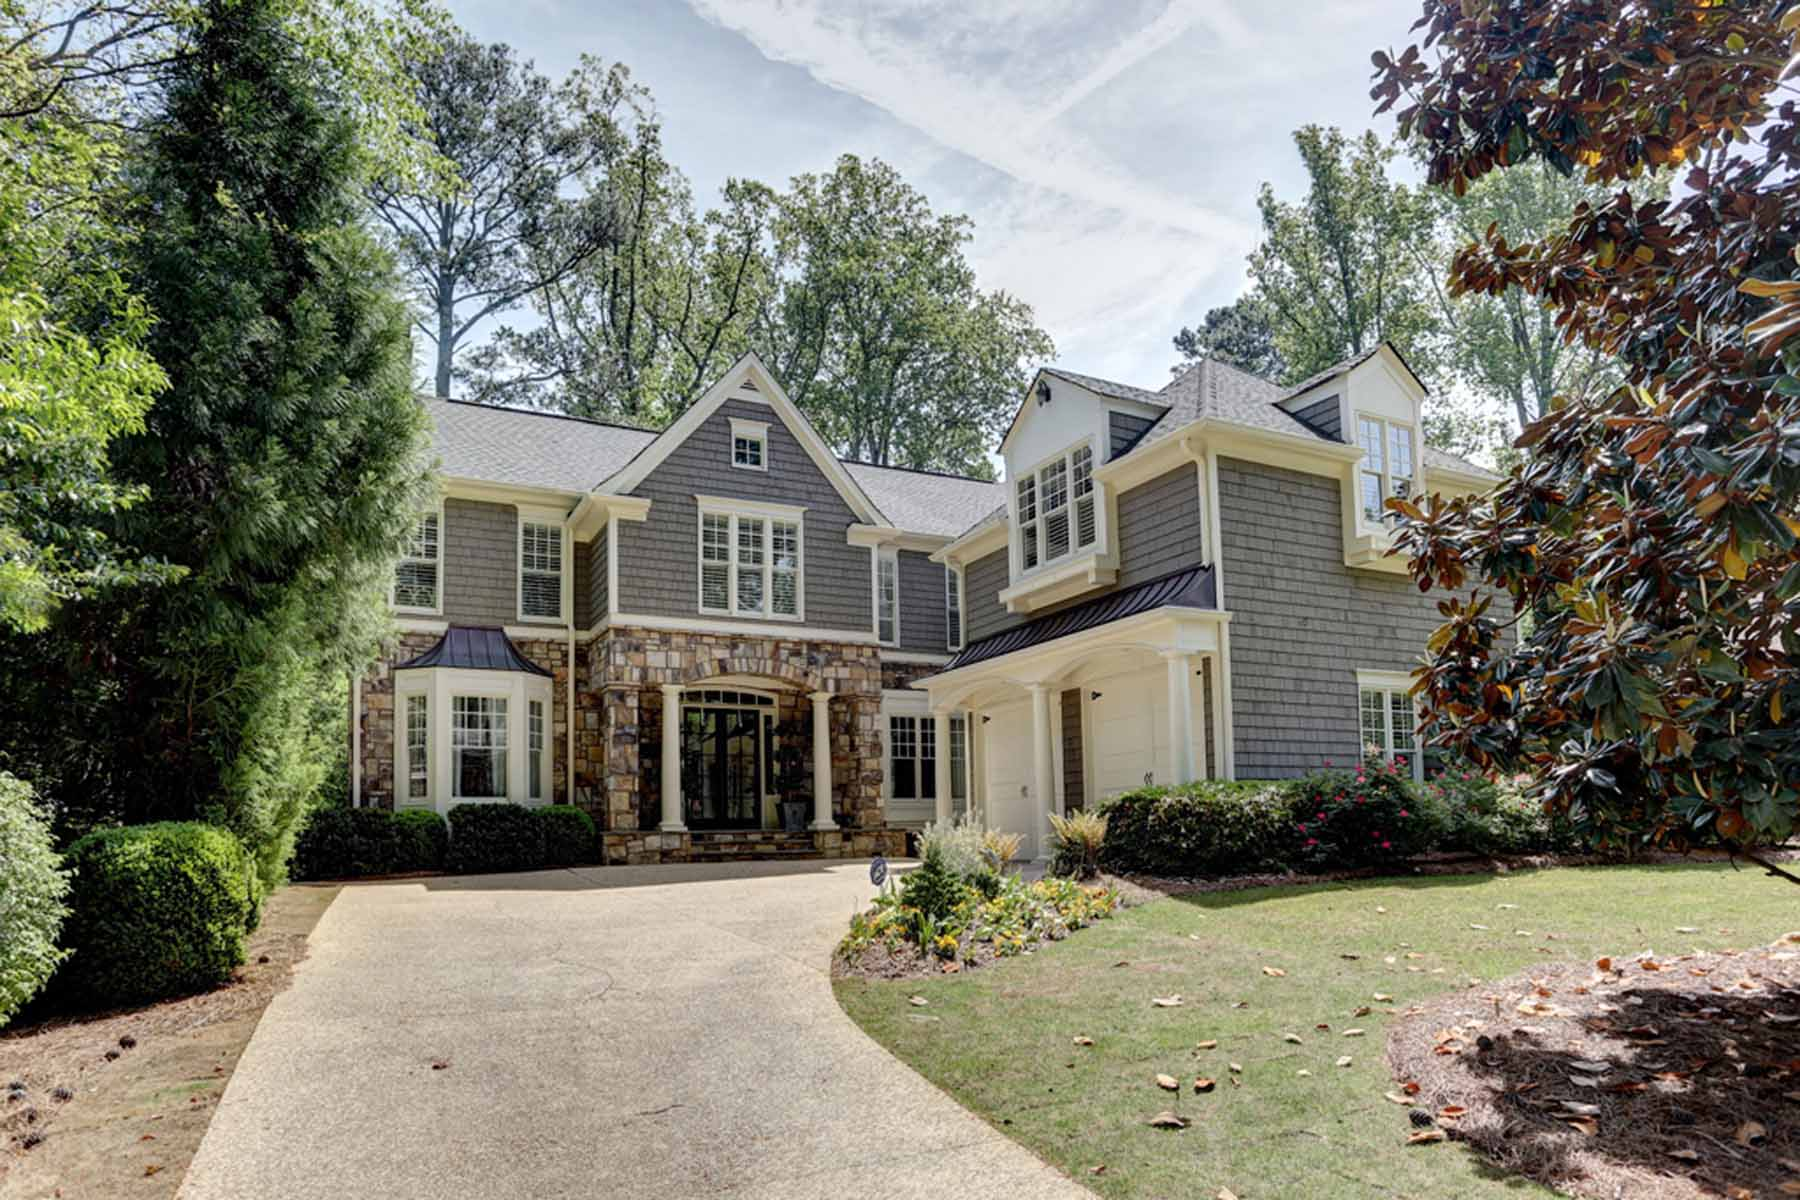 獨棟家庭住宅 為 出售 在 Remarkable Spitzmiller & Norris custom home in Morningside 1675 Wildwood Road NE Morningside, Atlanta, 喬治亞州, 30306 美國